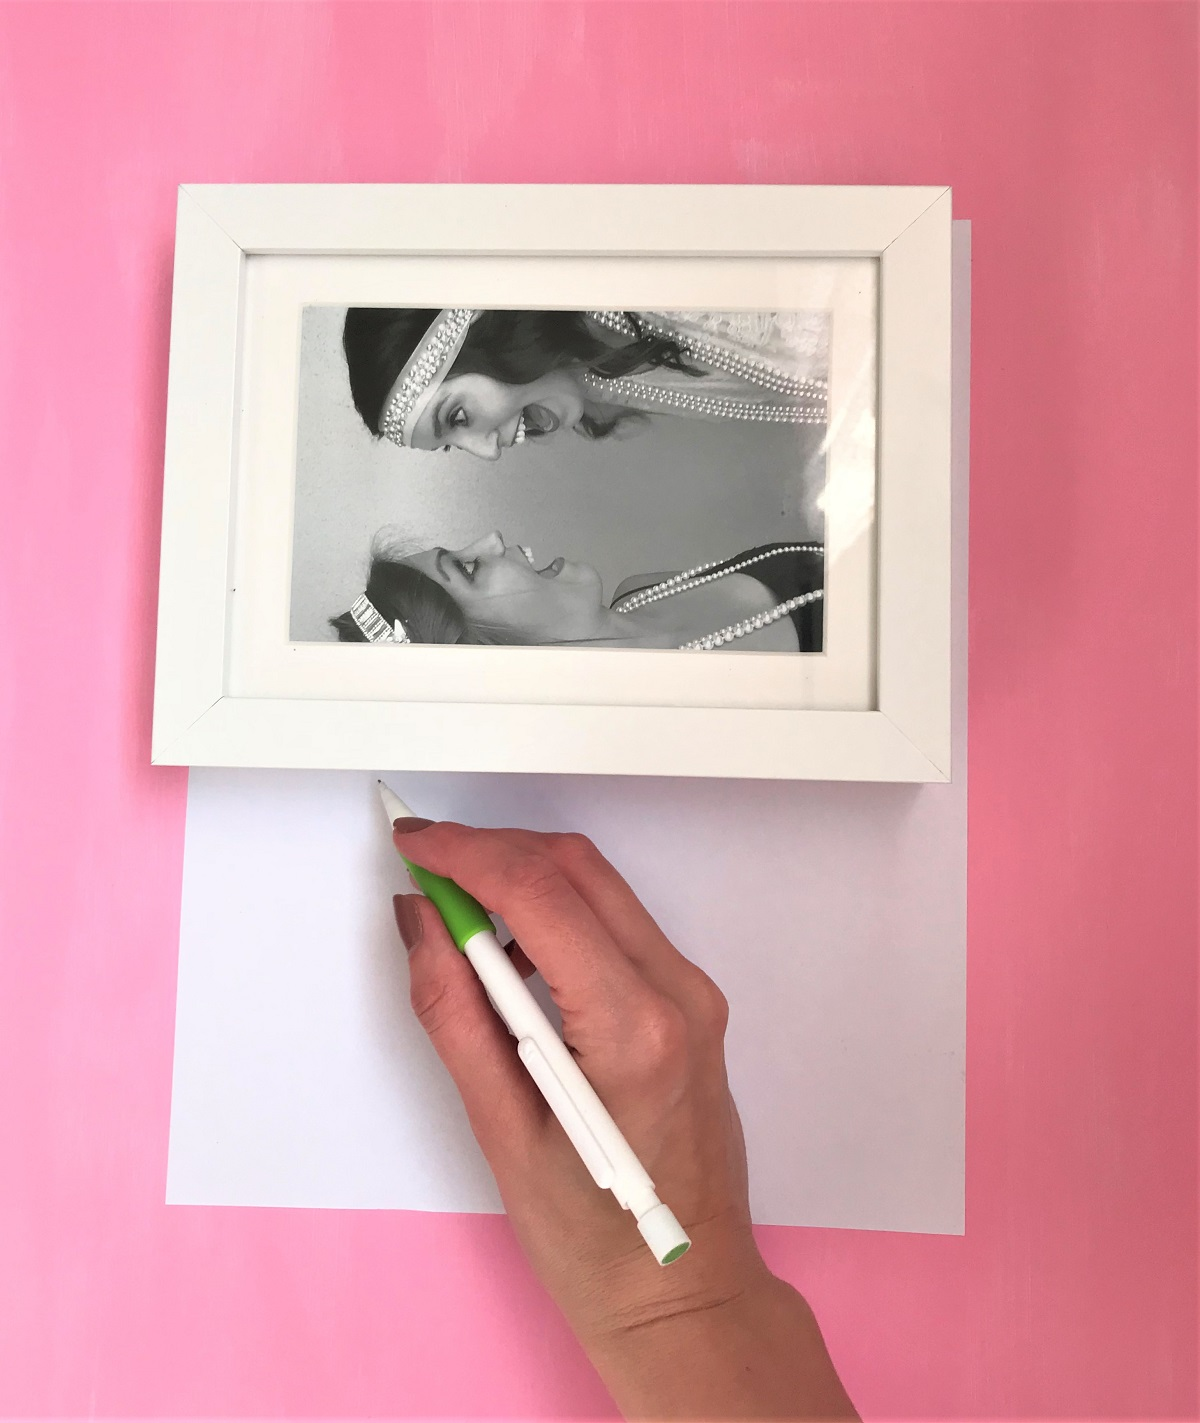 How to Make a Gallery Wall in 3 Easy Steps – Bunny Baubles